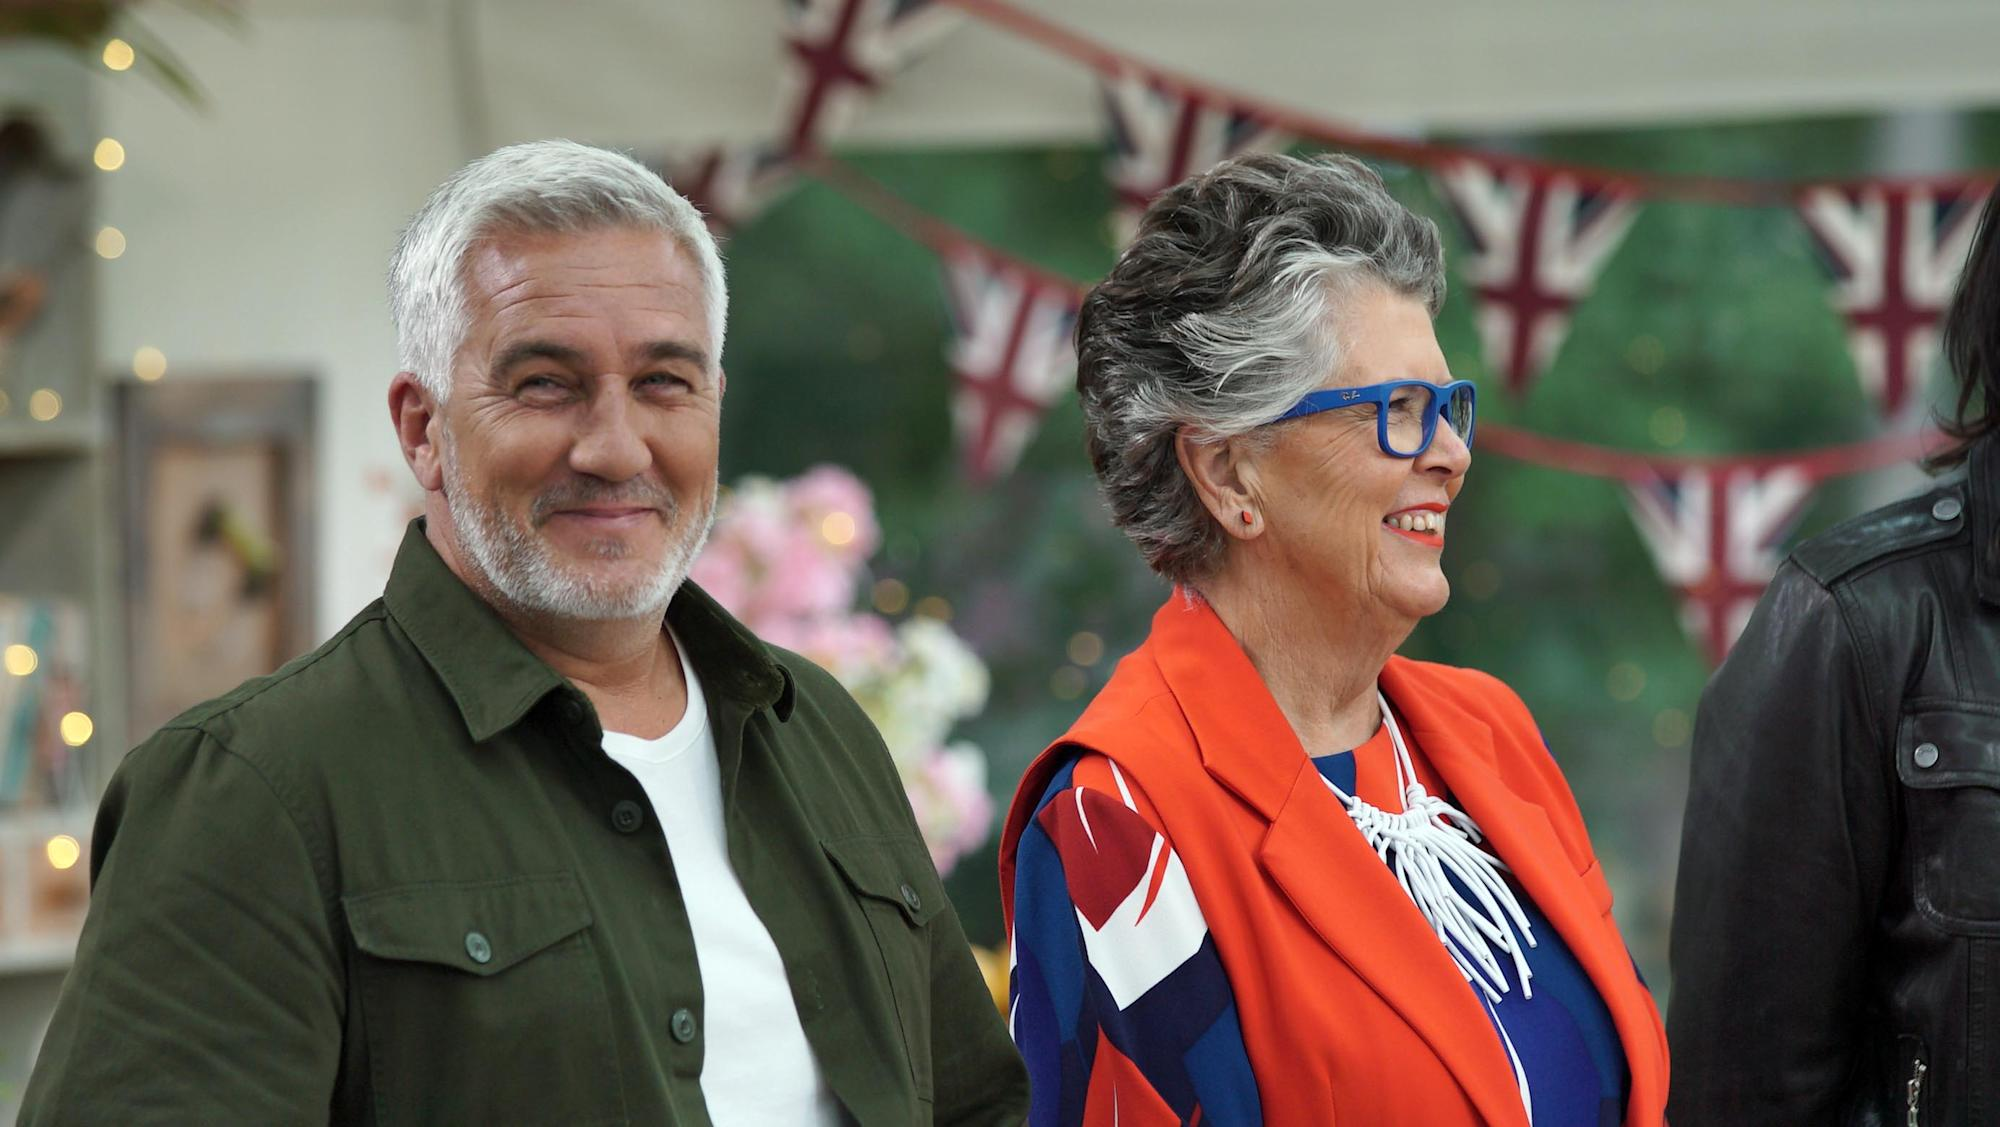 'This is what Bake Off's all about': Bread king Paul Hollywood has never tasted anything like contestant's loaf